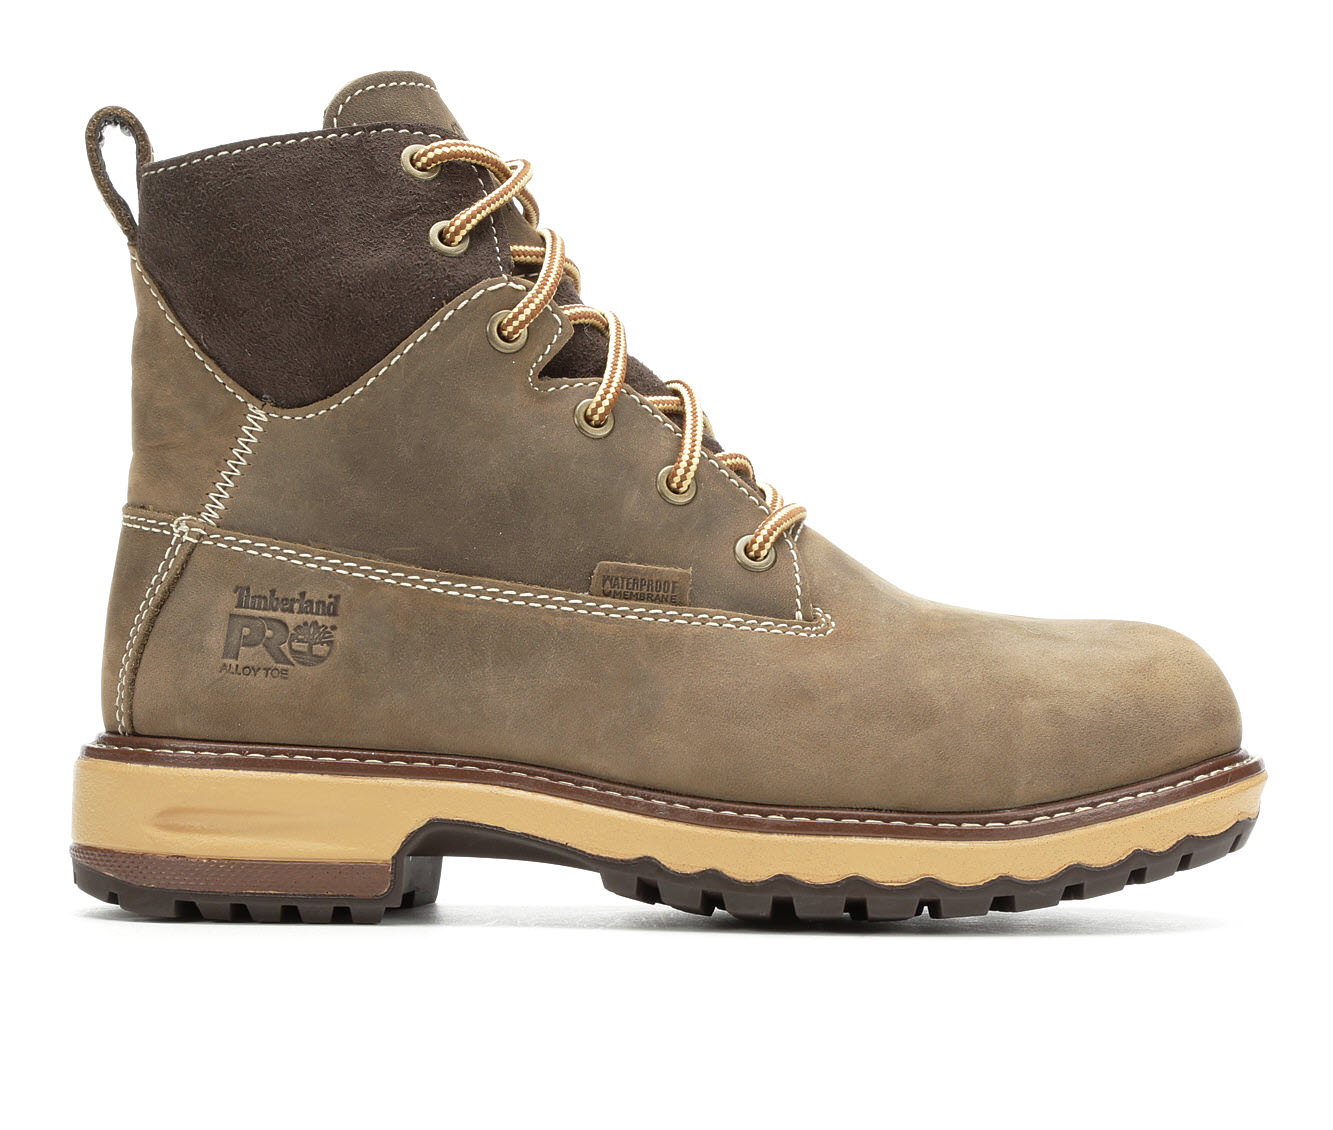 Timberland Pro Hightower Men's Boots (Brown Leather)